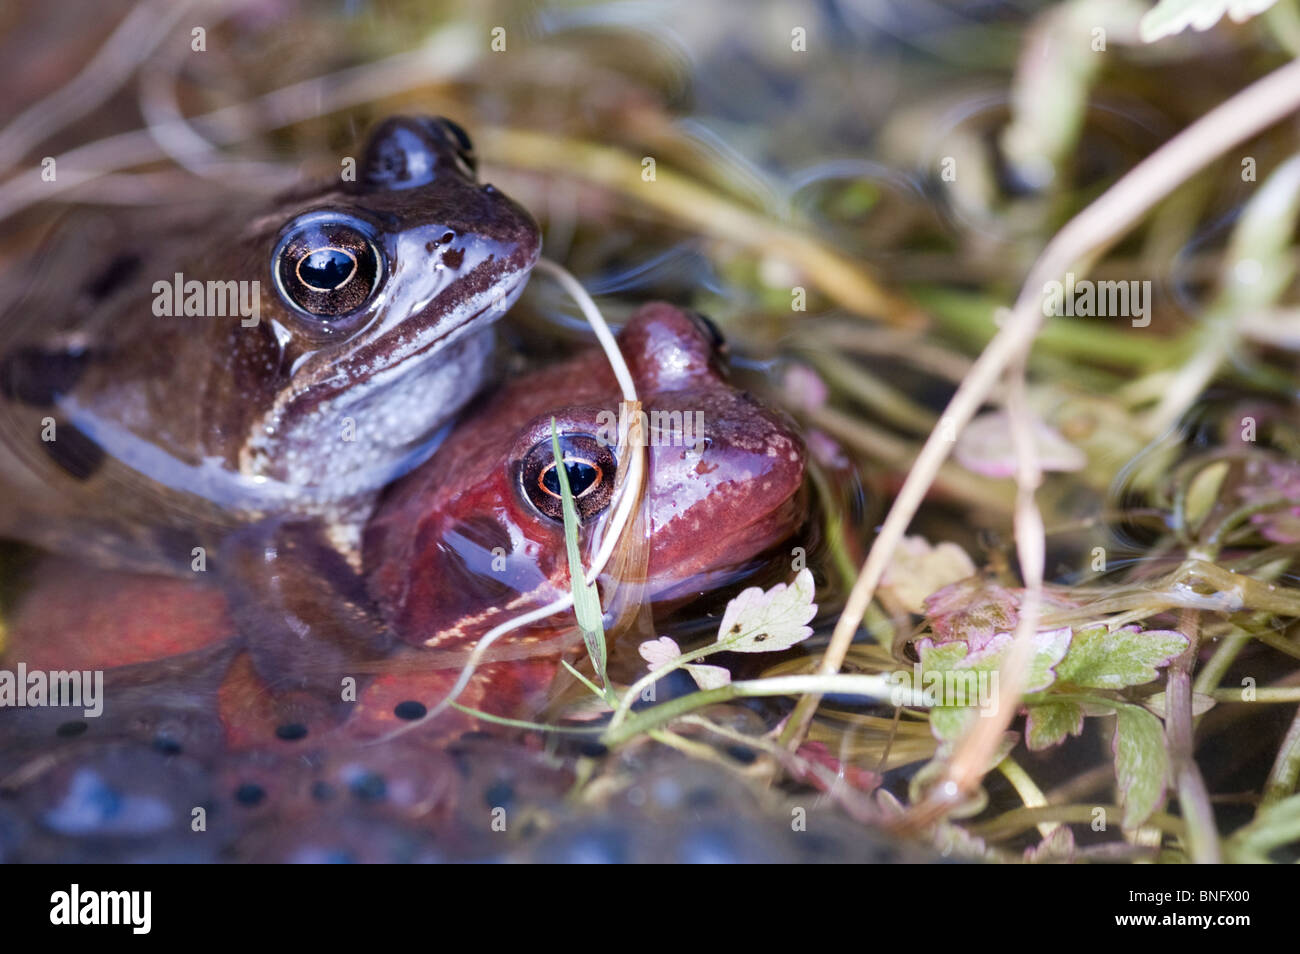 Common frogs with spawn in the mating season in a  Worcestershire garden pond - Stock Image